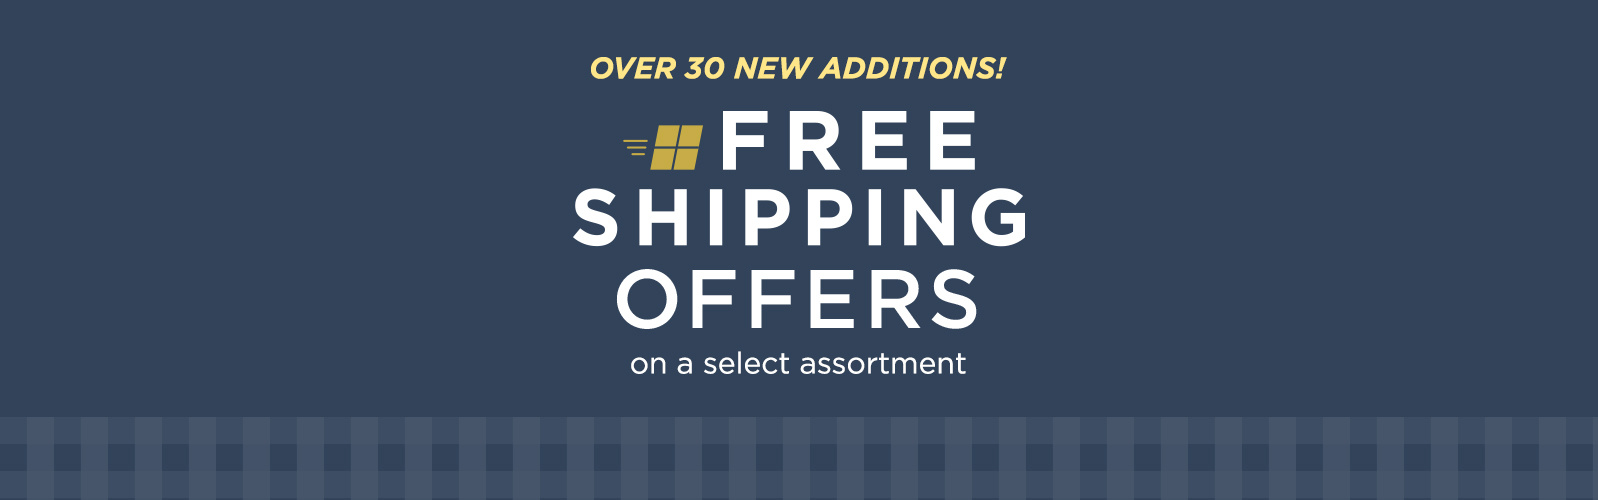 Free Shipping on a select assortment — Over 30 New Additions!